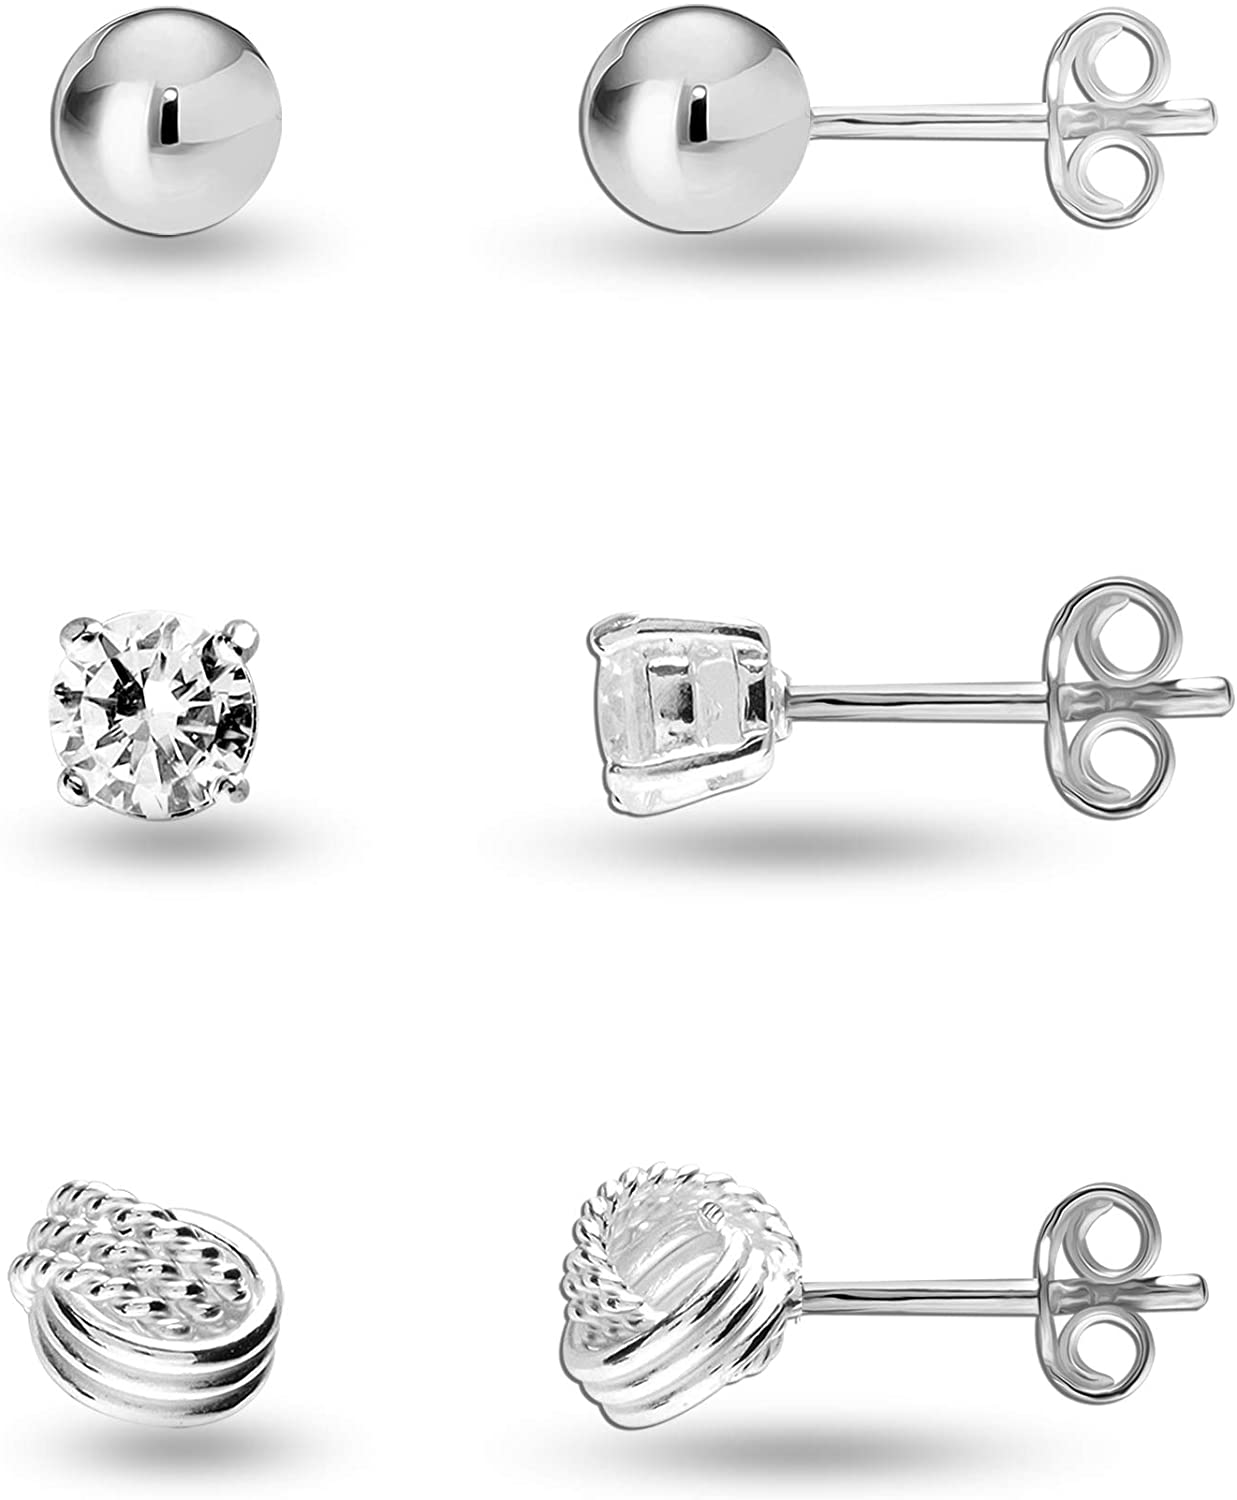 Small Set of 3 Pairs 925 Sterling Silver Ball Star Moon Cross Heart Triangle Bar CZ Love-Knot Stud Earrings for Girl Teen